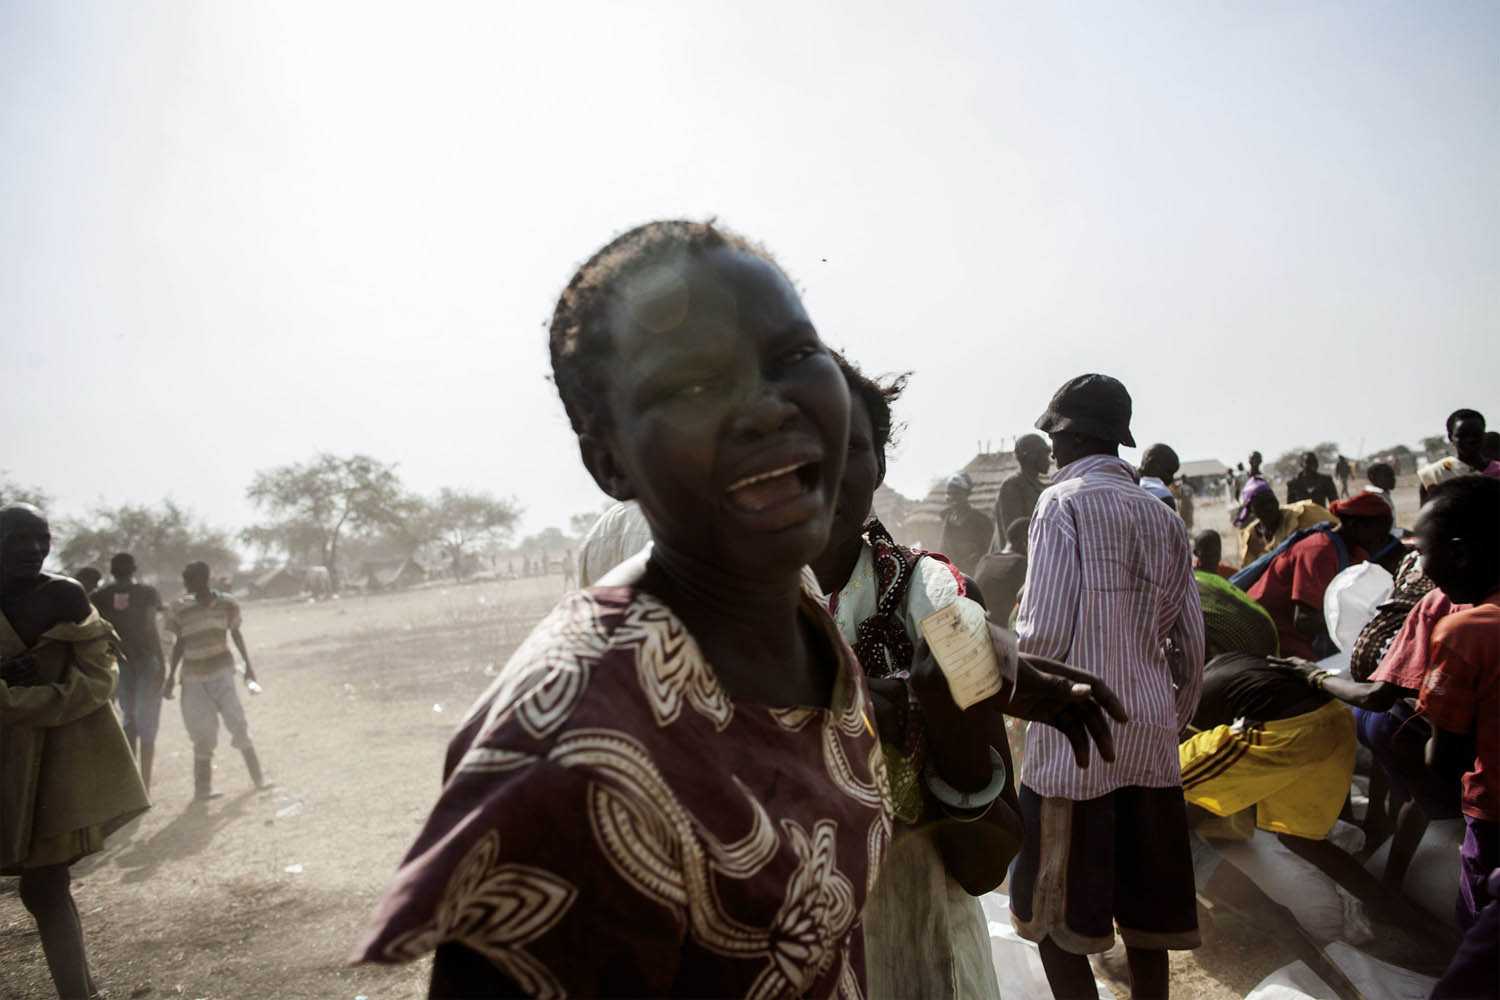 Feb. 9, 2014. A South Sudanese woman reacts as South Sudanese internally displaced people (IDP) fight for food supplies, distributed by the International Committee of the Red Cross (ICRC) at the Mingkaman temporary camp, South Sudan.